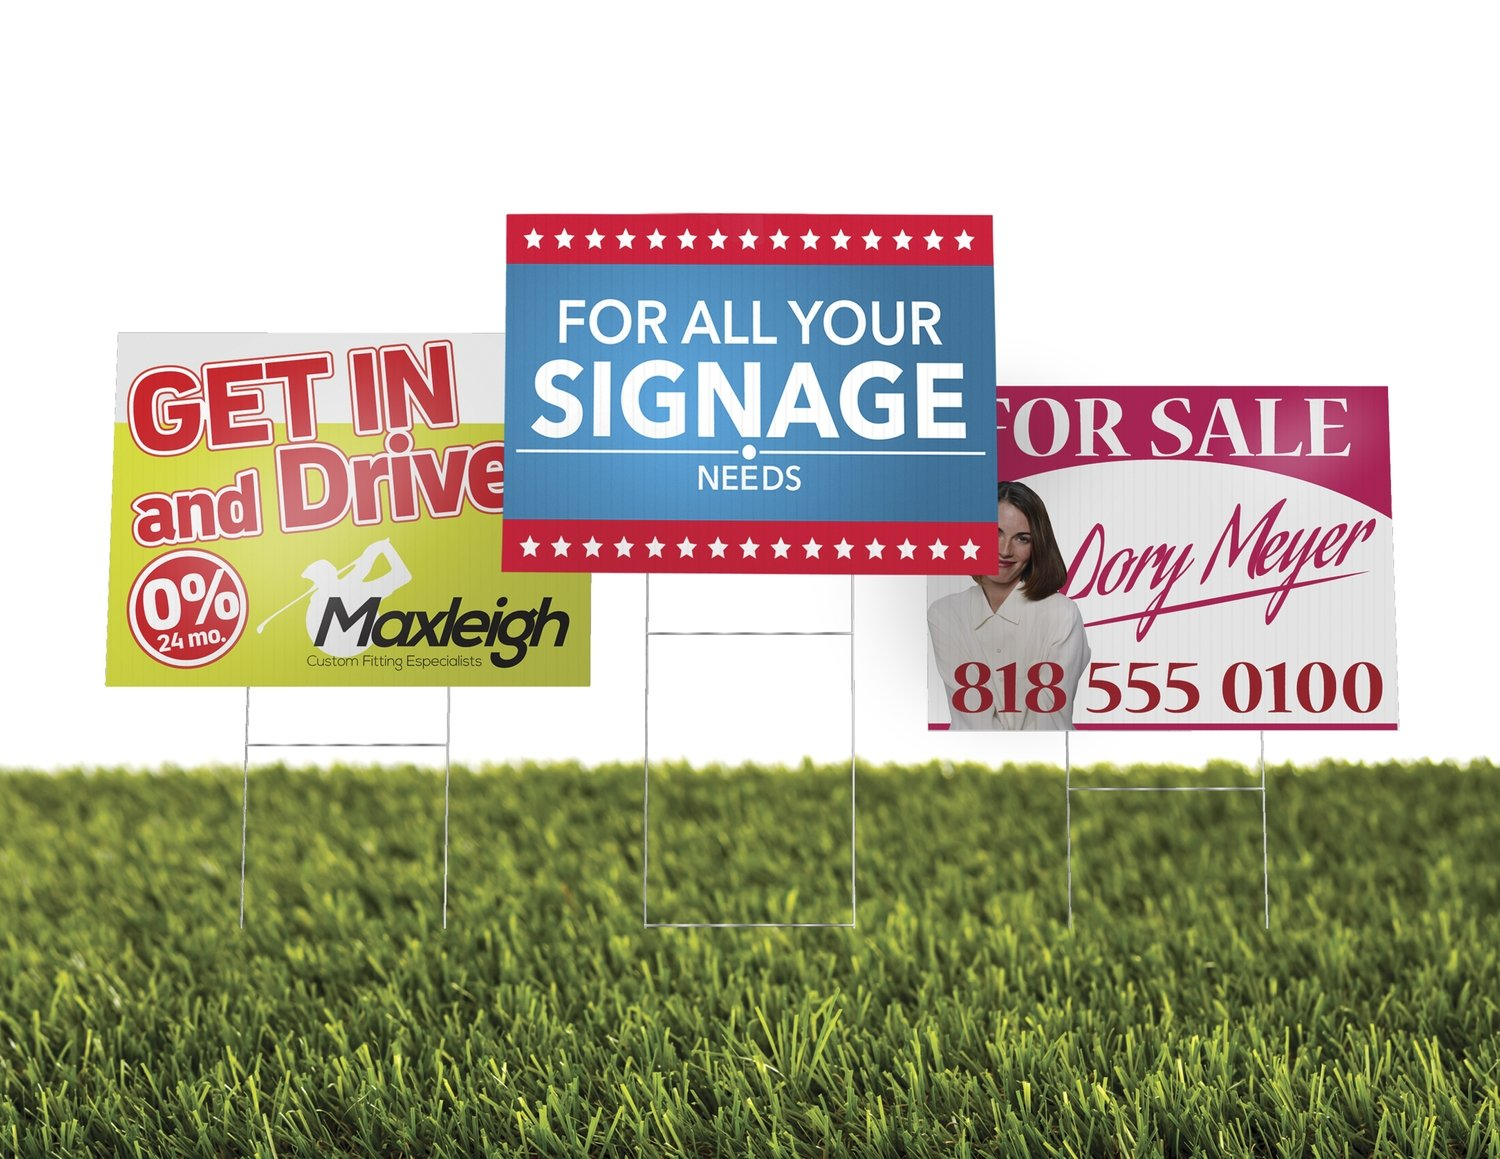 4mm - Corrugated Plastic with Optional Stands (Yard Signs) -OLD